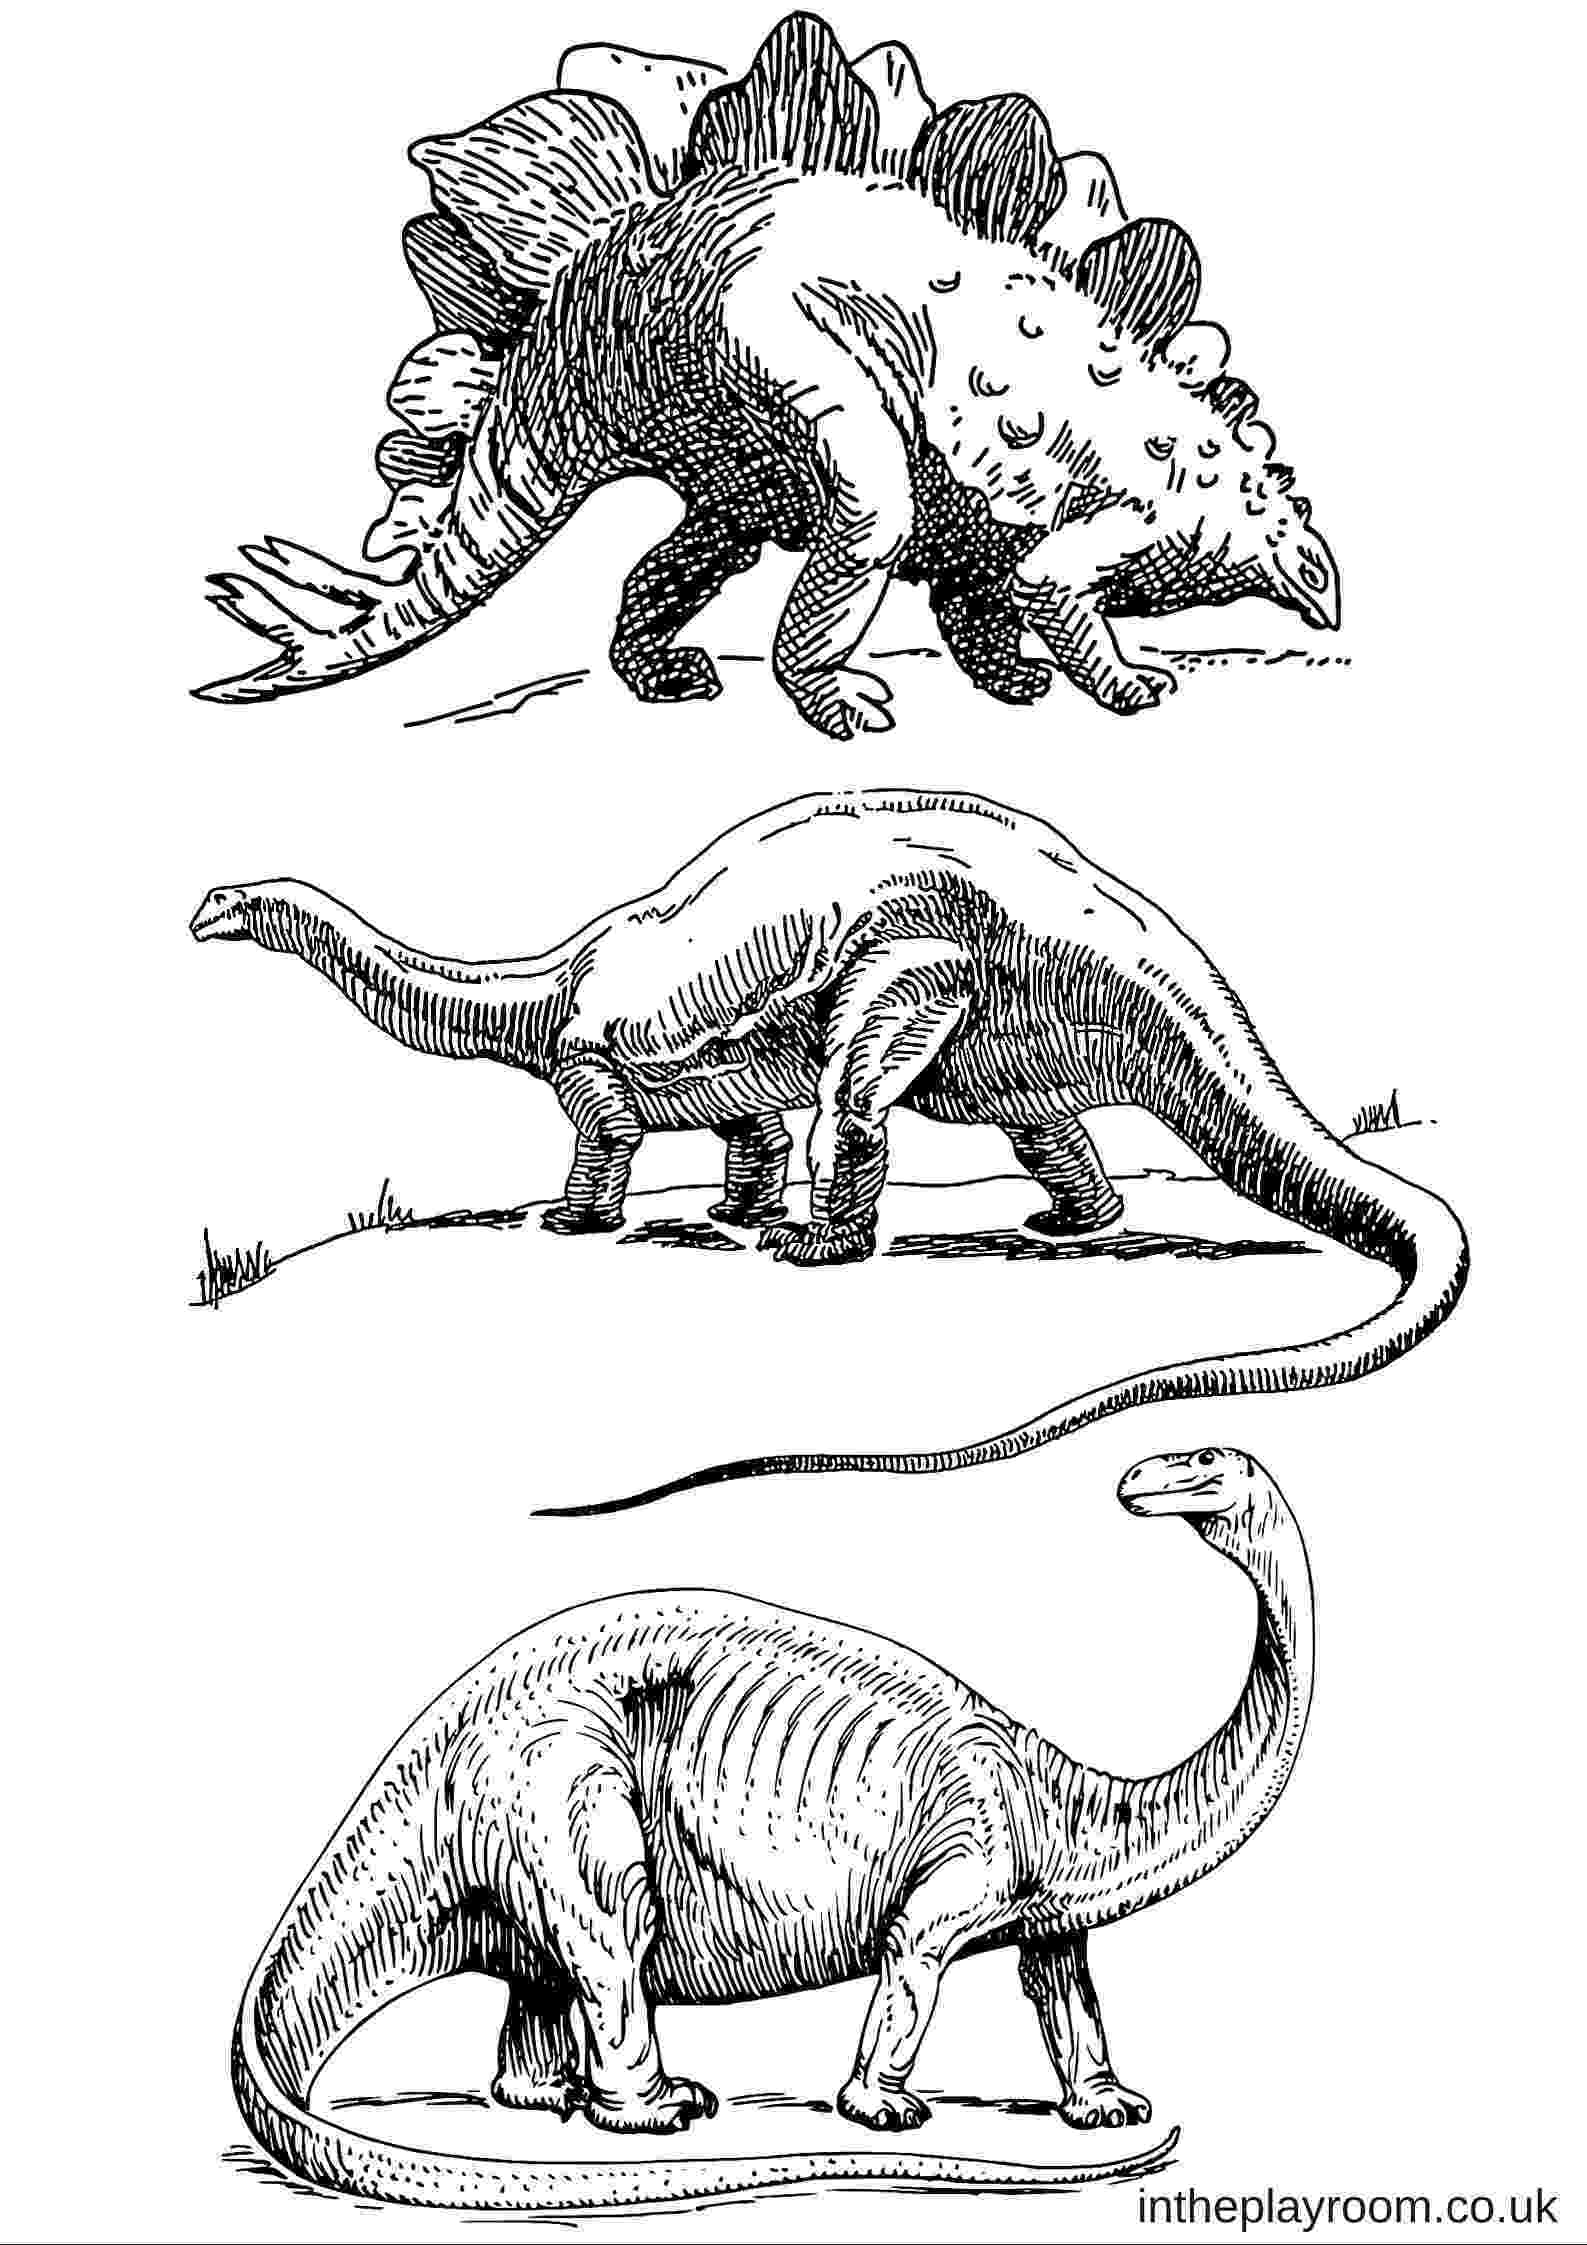 dinosaur pictures to color and print coloring pages dinosaur free printable coloring pages pictures print to color dinosaur and